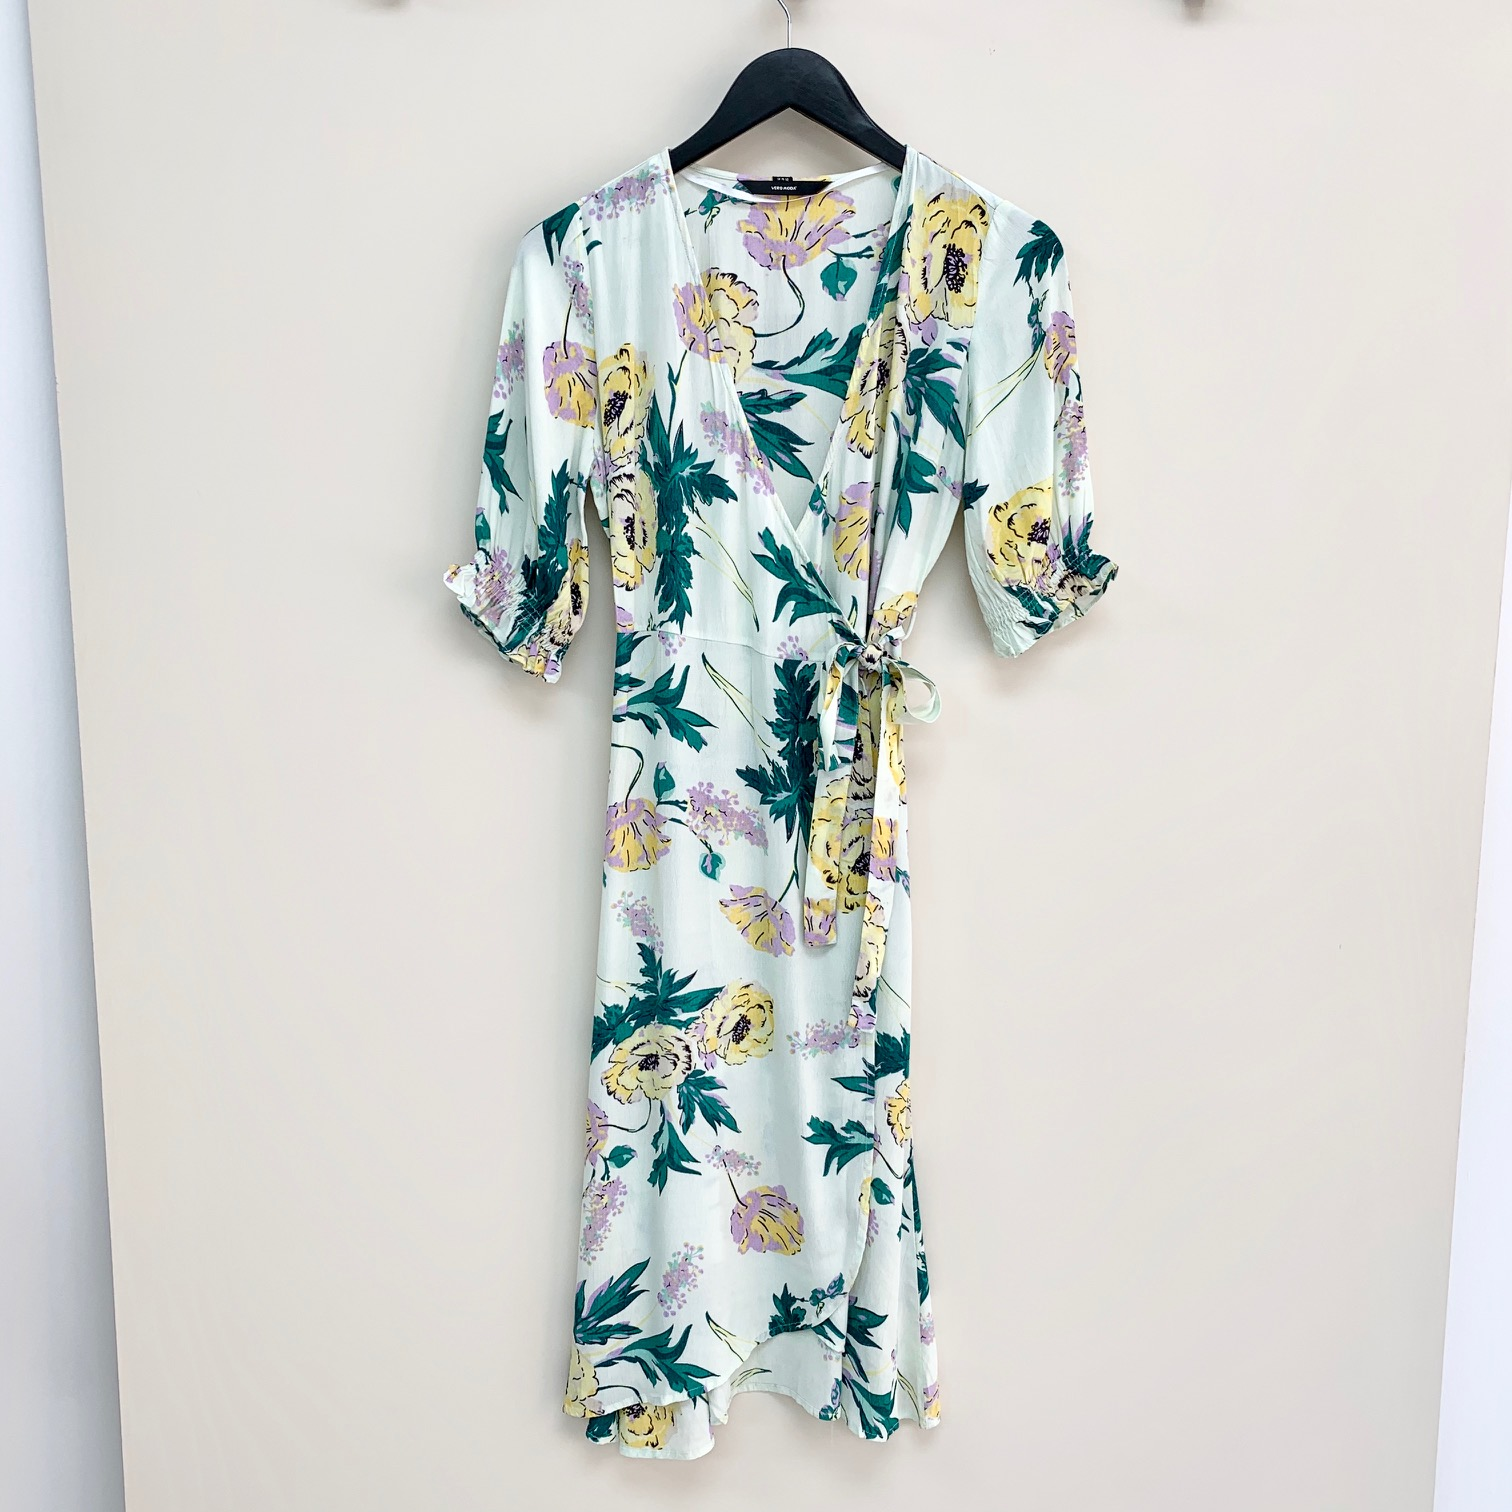 SALE Oline Floral Wrap Dress